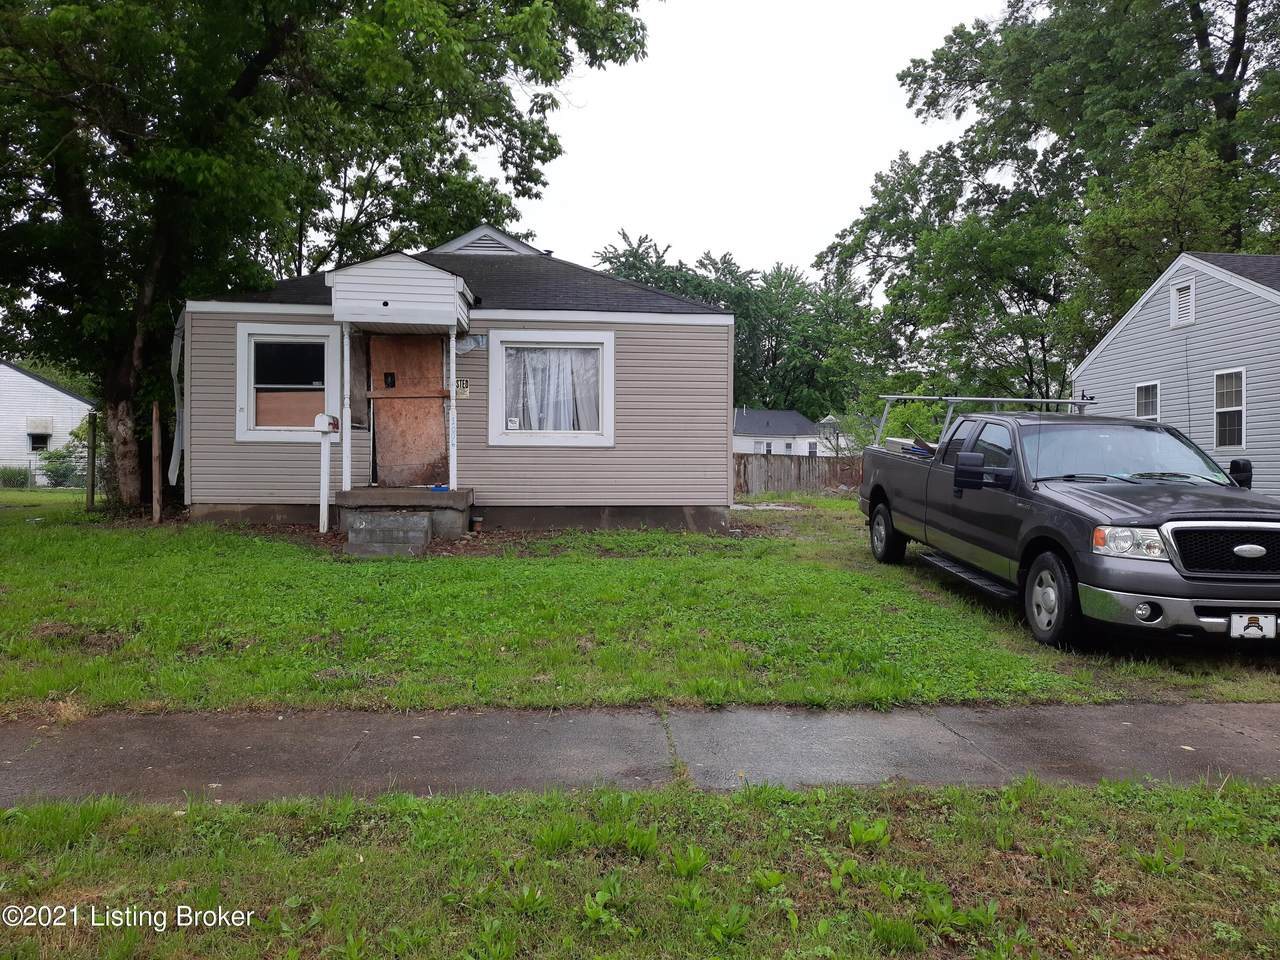 1006 Stanley Ave - Photo 1